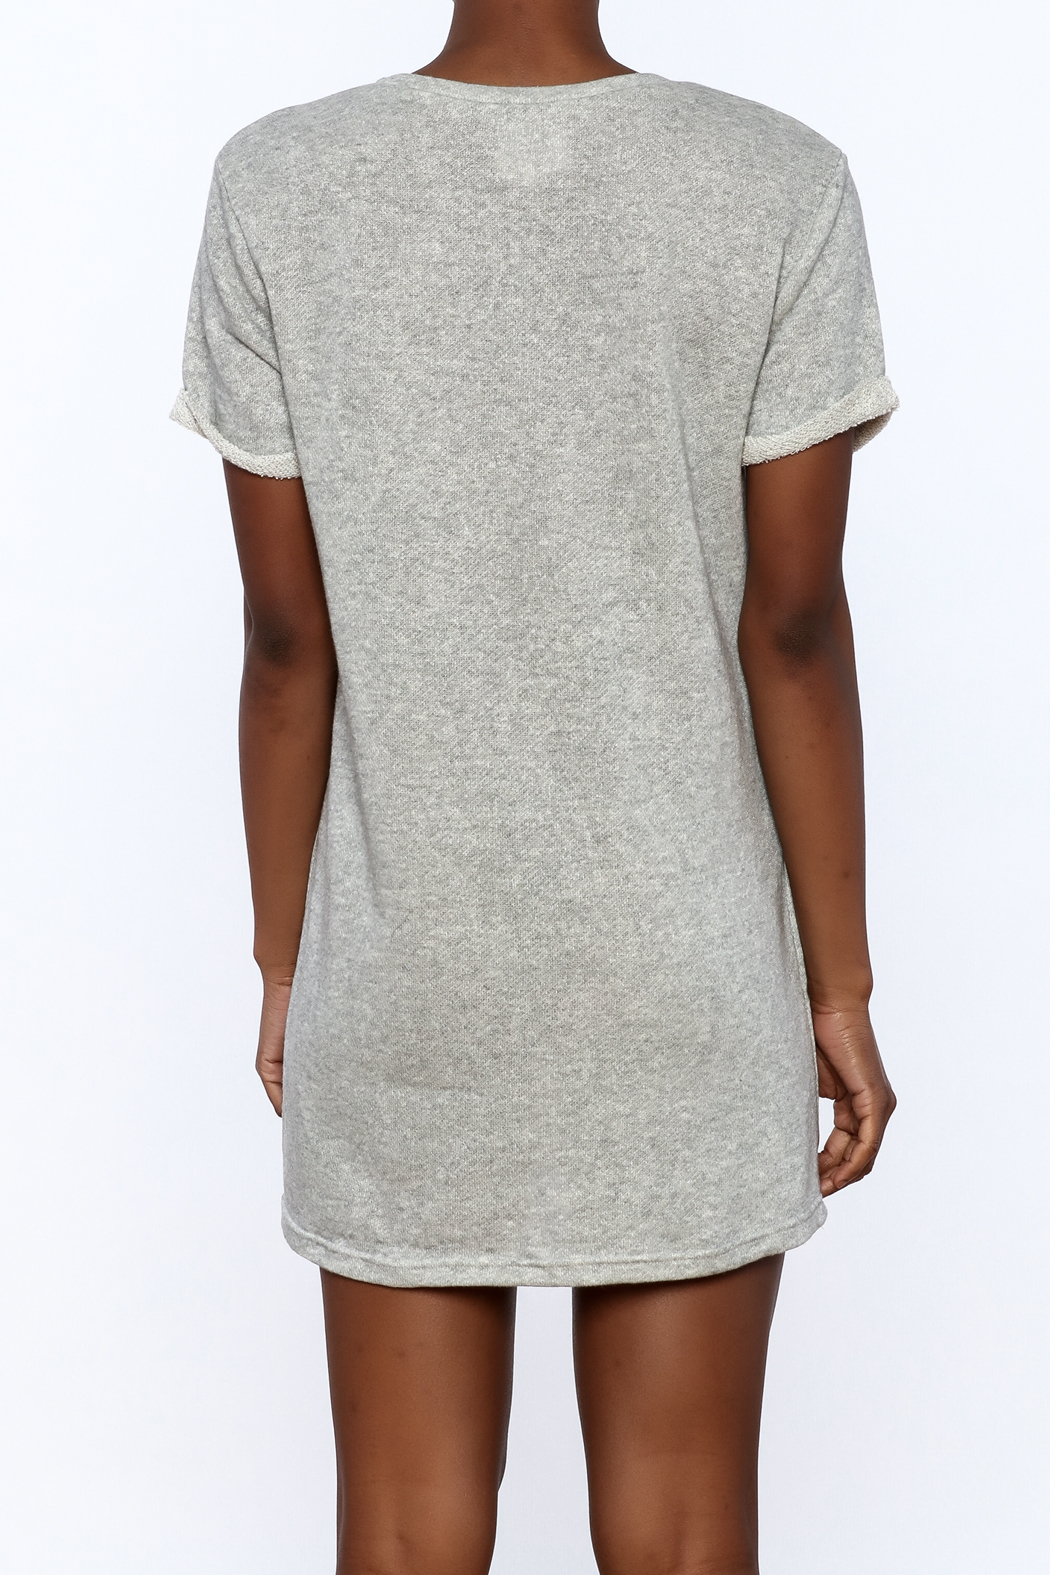 Better Be Grey Embroidered Dress - Back Cropped Image